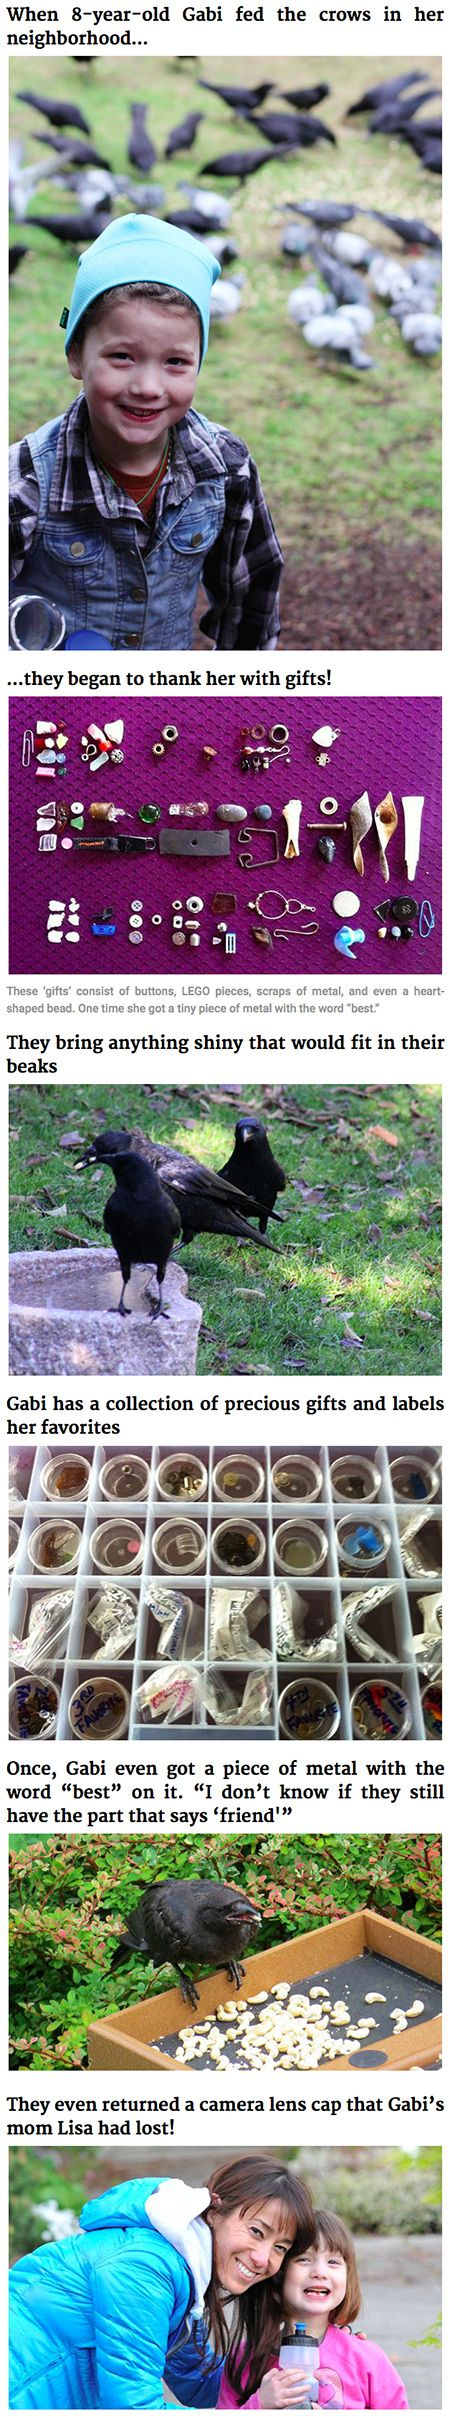 This girl receives gifts from the crows she has been feeding since she was four years old. <<< She is a disney princess